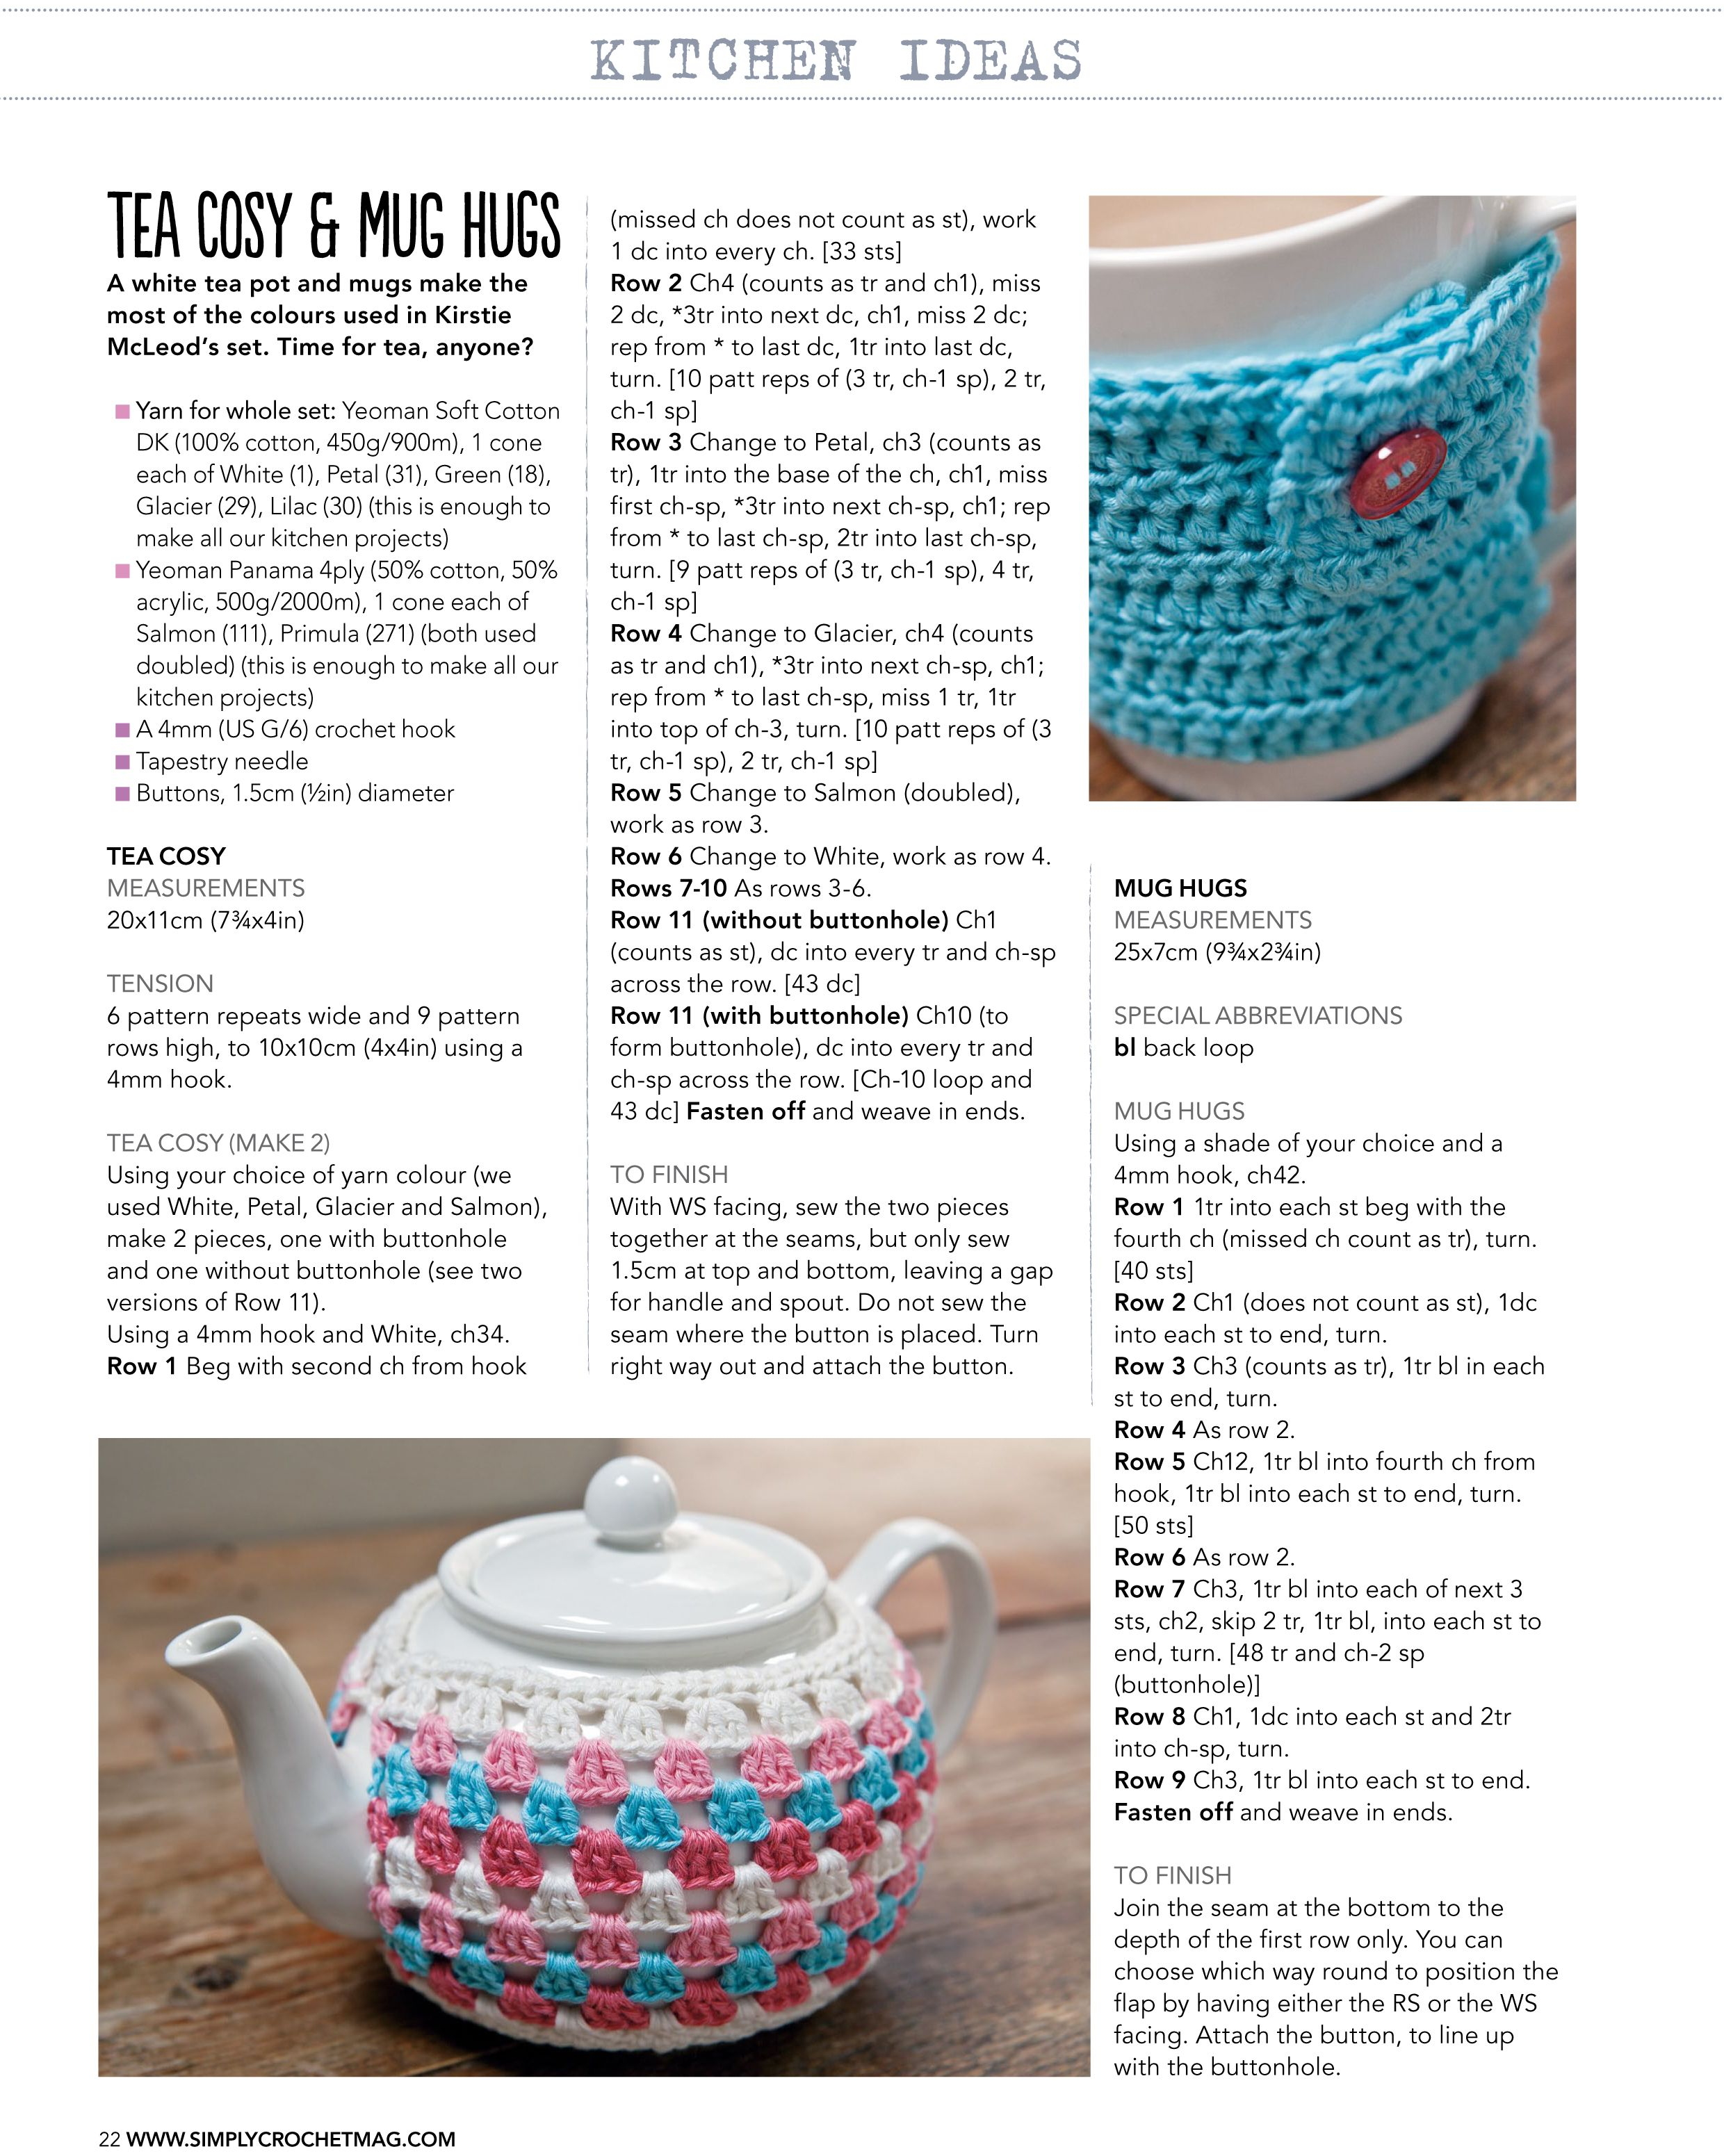 Crochet a tea cosy for Breast Cancer Care - Simply Crochet | tejidos ...